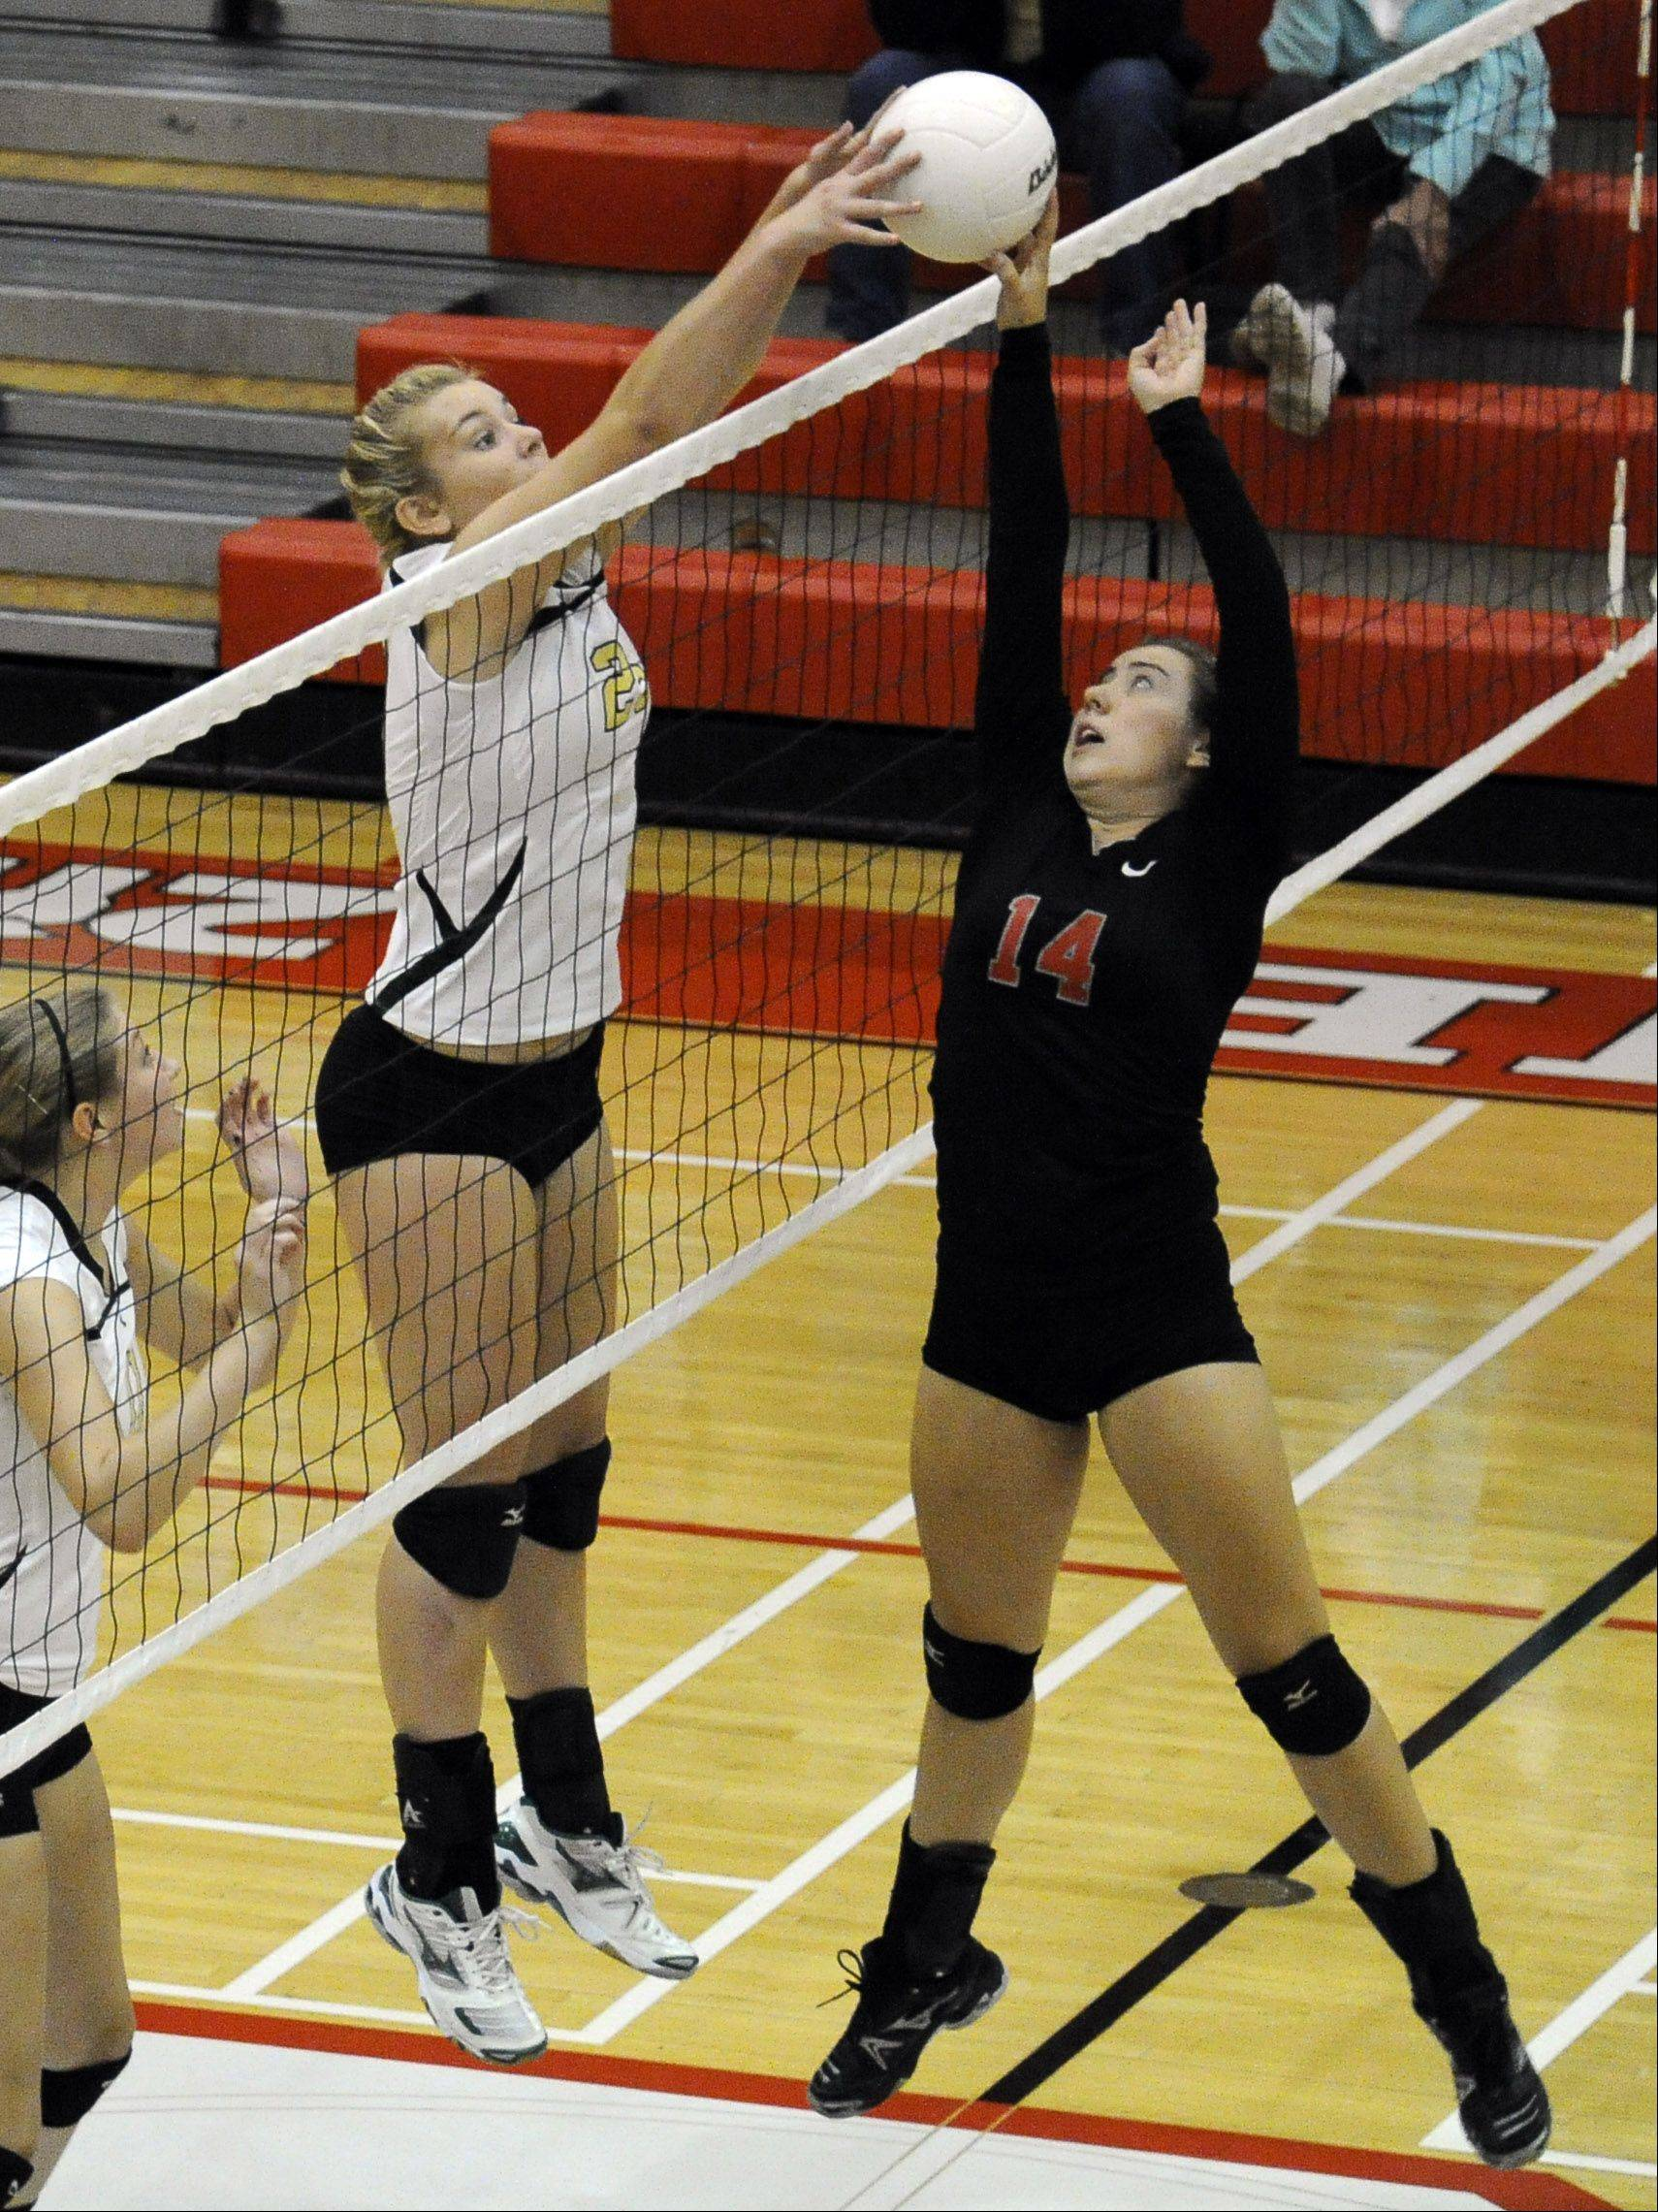 Palatine's Sarah Schiffner and Fremd's Lane Hindenburg battle it out for a point Thursday at Palatine.